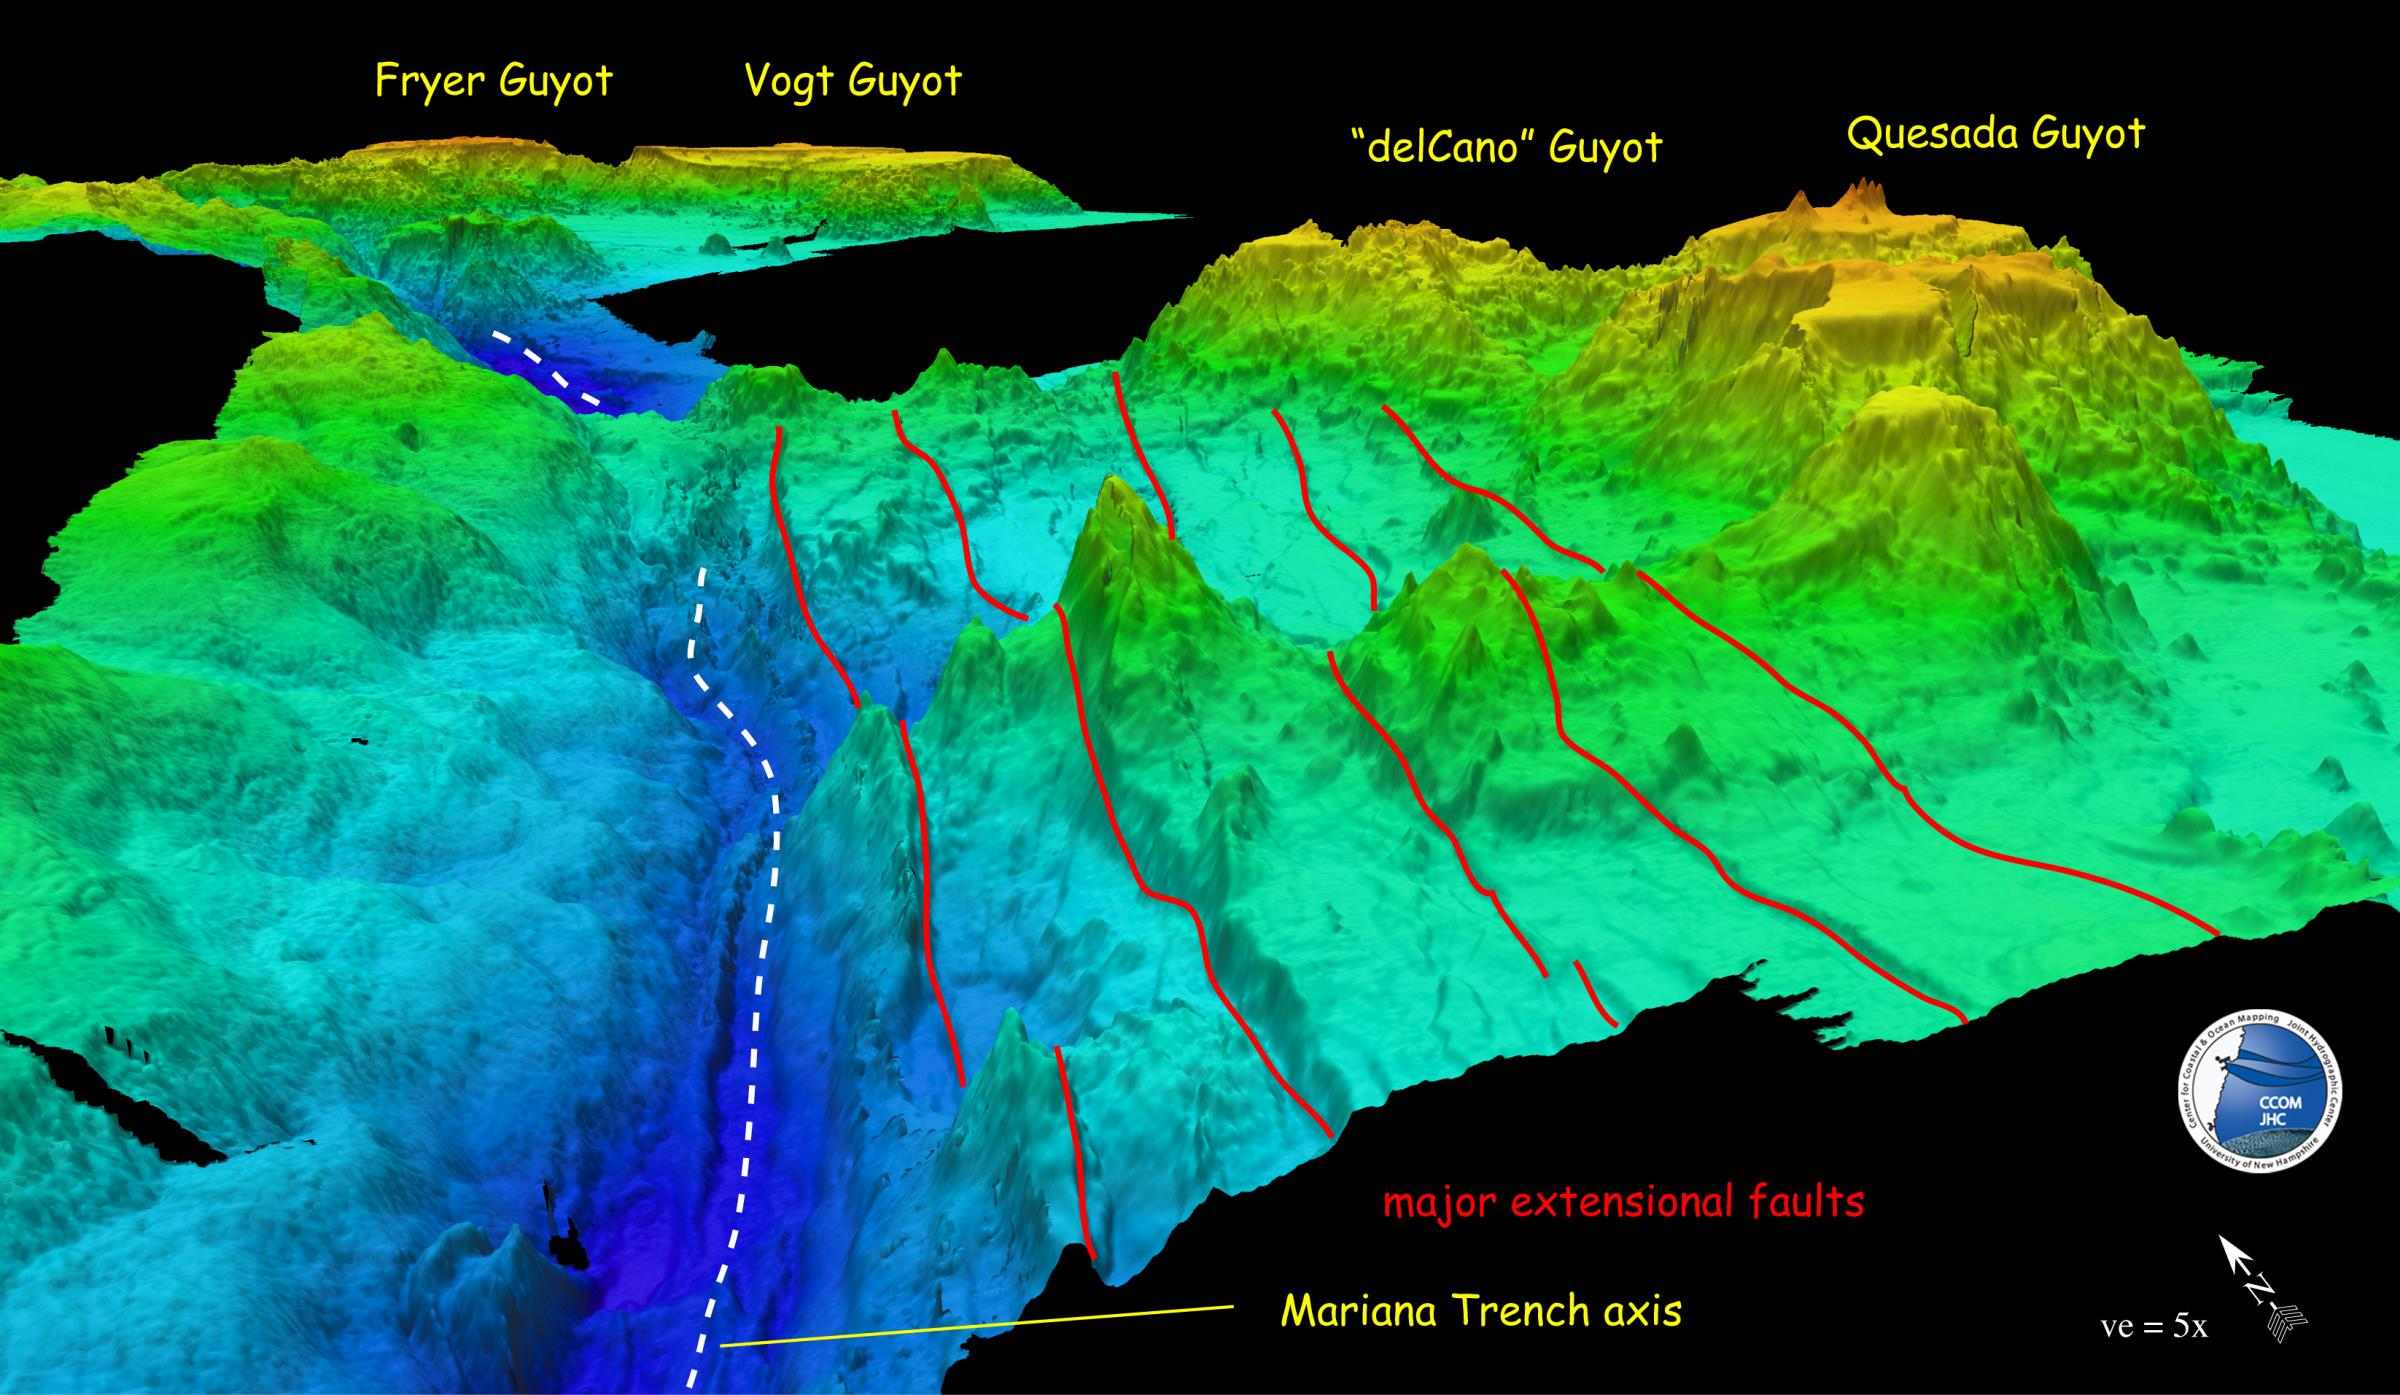 Bathymetry image showing Mariana Trench - Guyots Carried into the Trenc